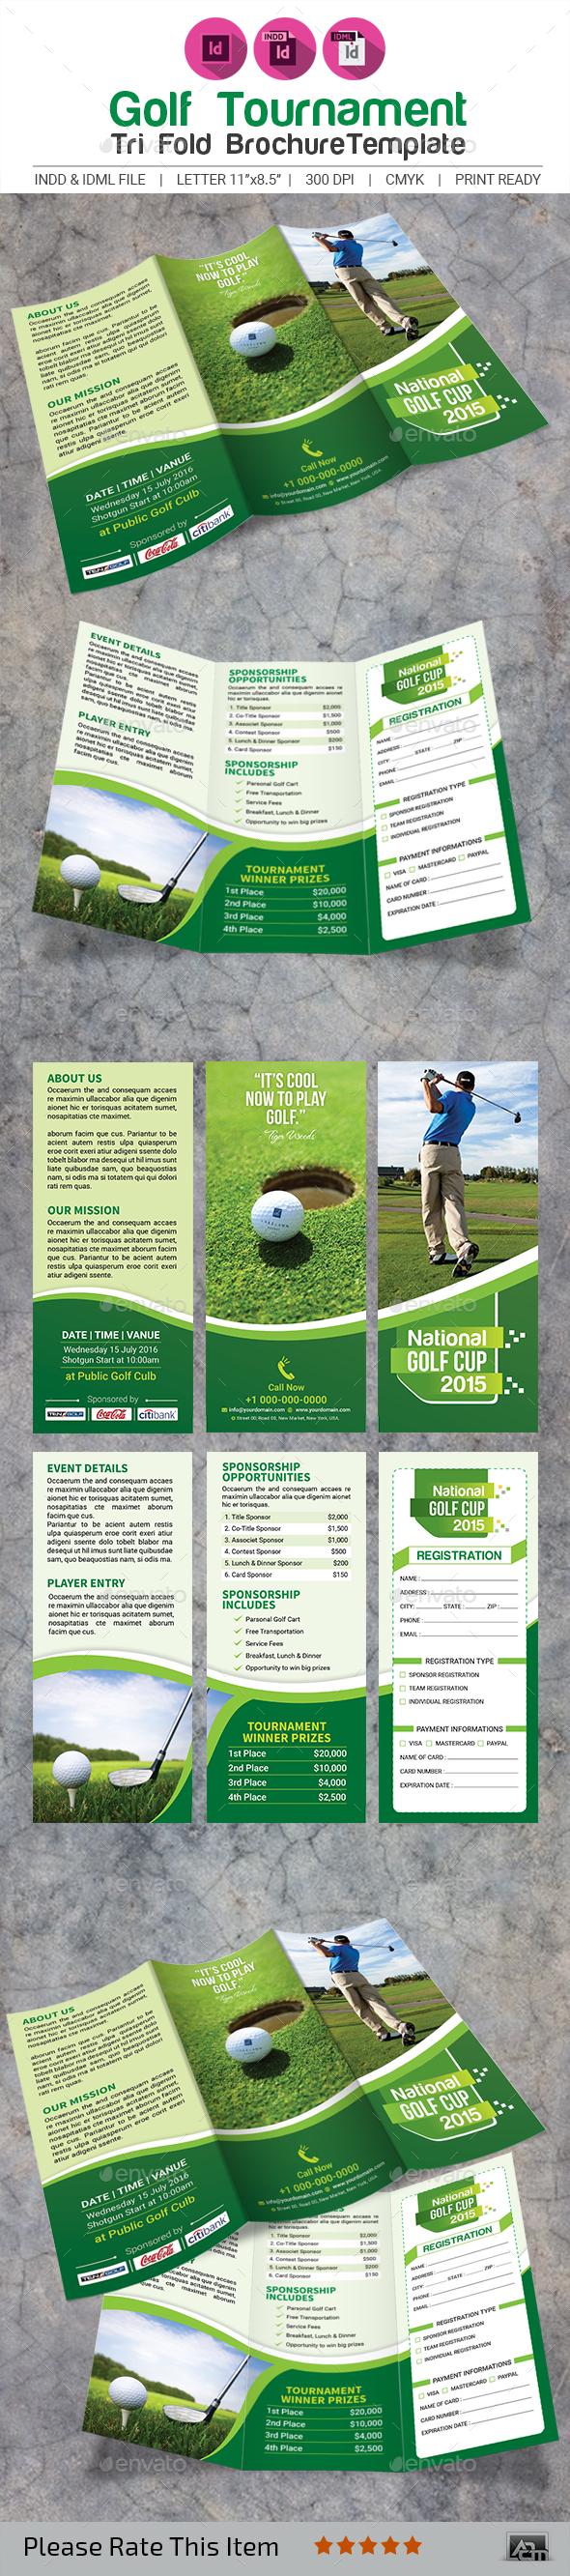 Golf tournament tri fold brochure template by aam360 for Golf tournament program template